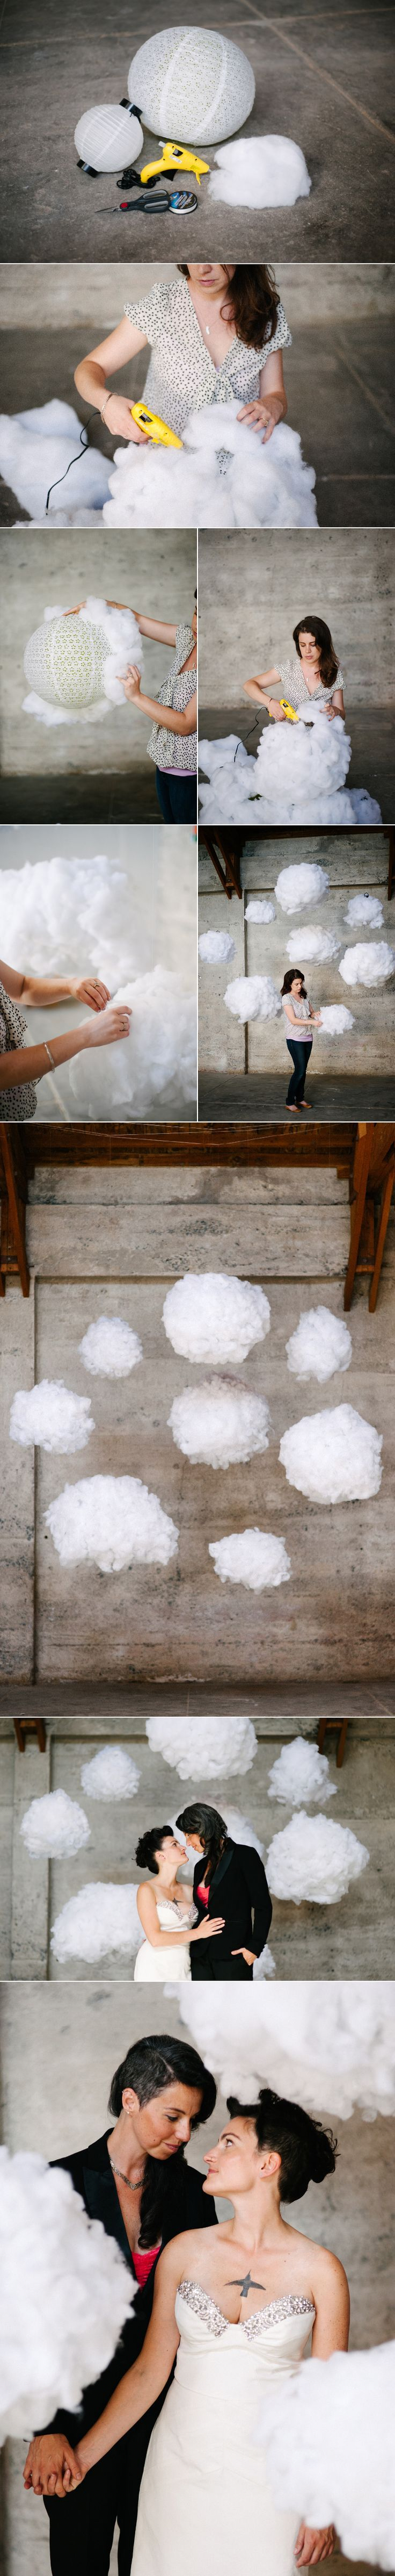 How To: Surreal DIY Cloud Backdrop (supposedly for weddings but probably awesome in my house)